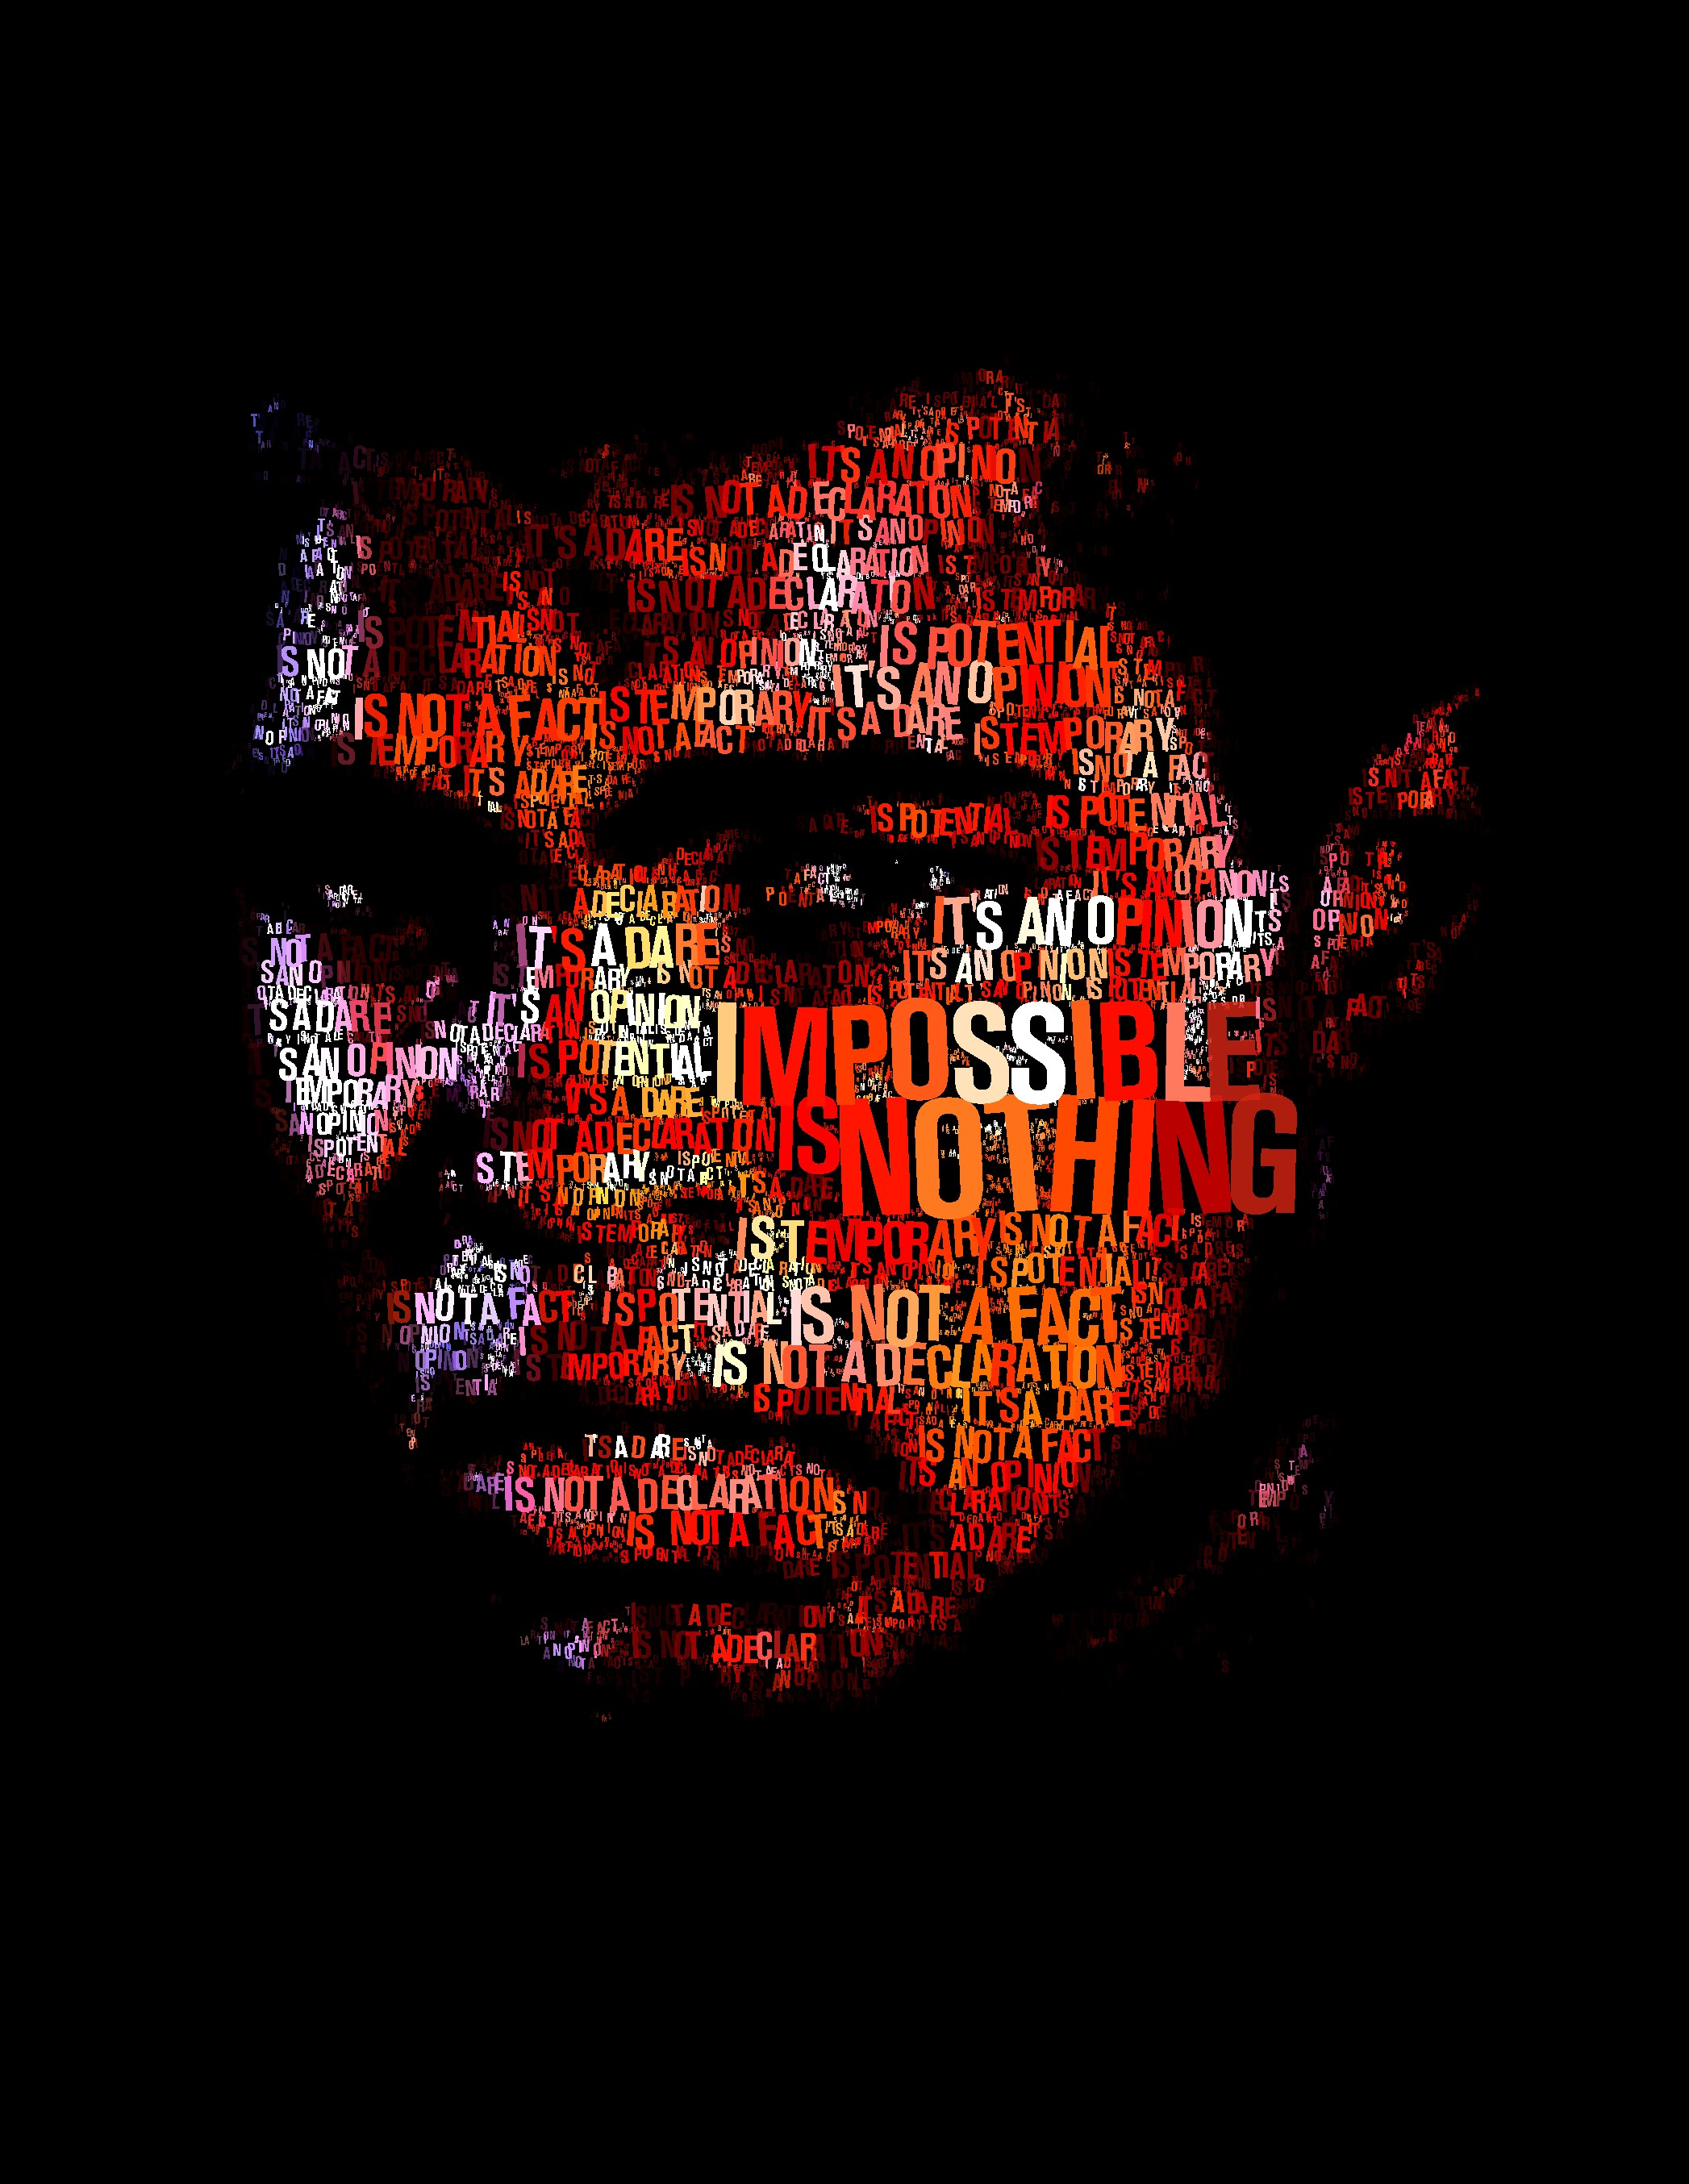 Muhammad ali quotes wallpaper wallpapersafari galleries muhammad ali quotes muhammad ali wallpaper muhammad ali voltagebd Images